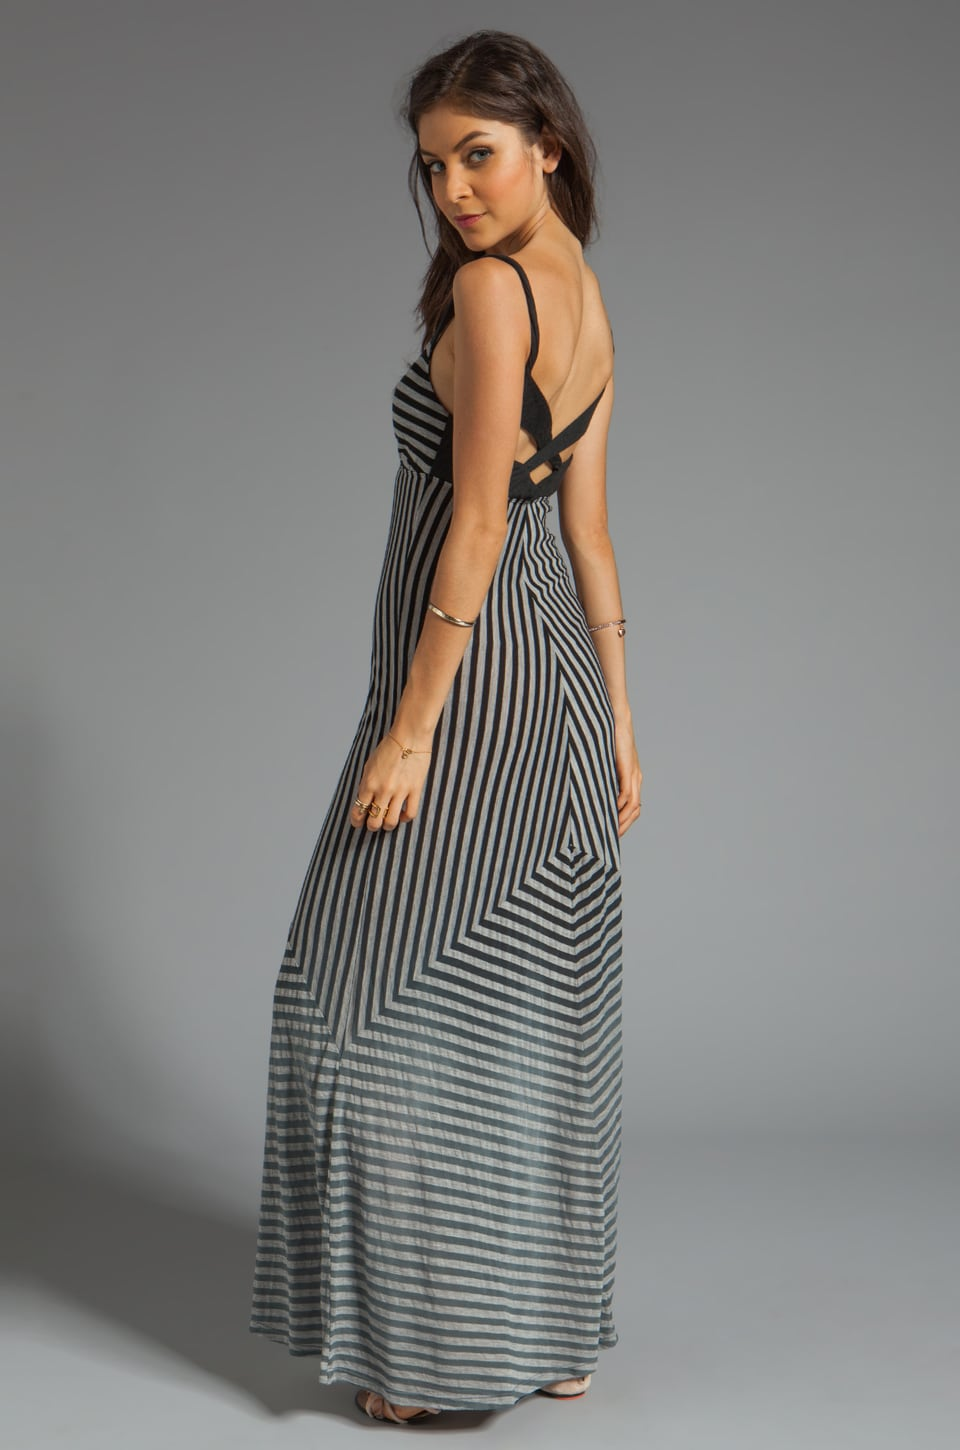 Gypsy 05 Cabarete Jersey Stripe Knit Maxi Dress in Noir